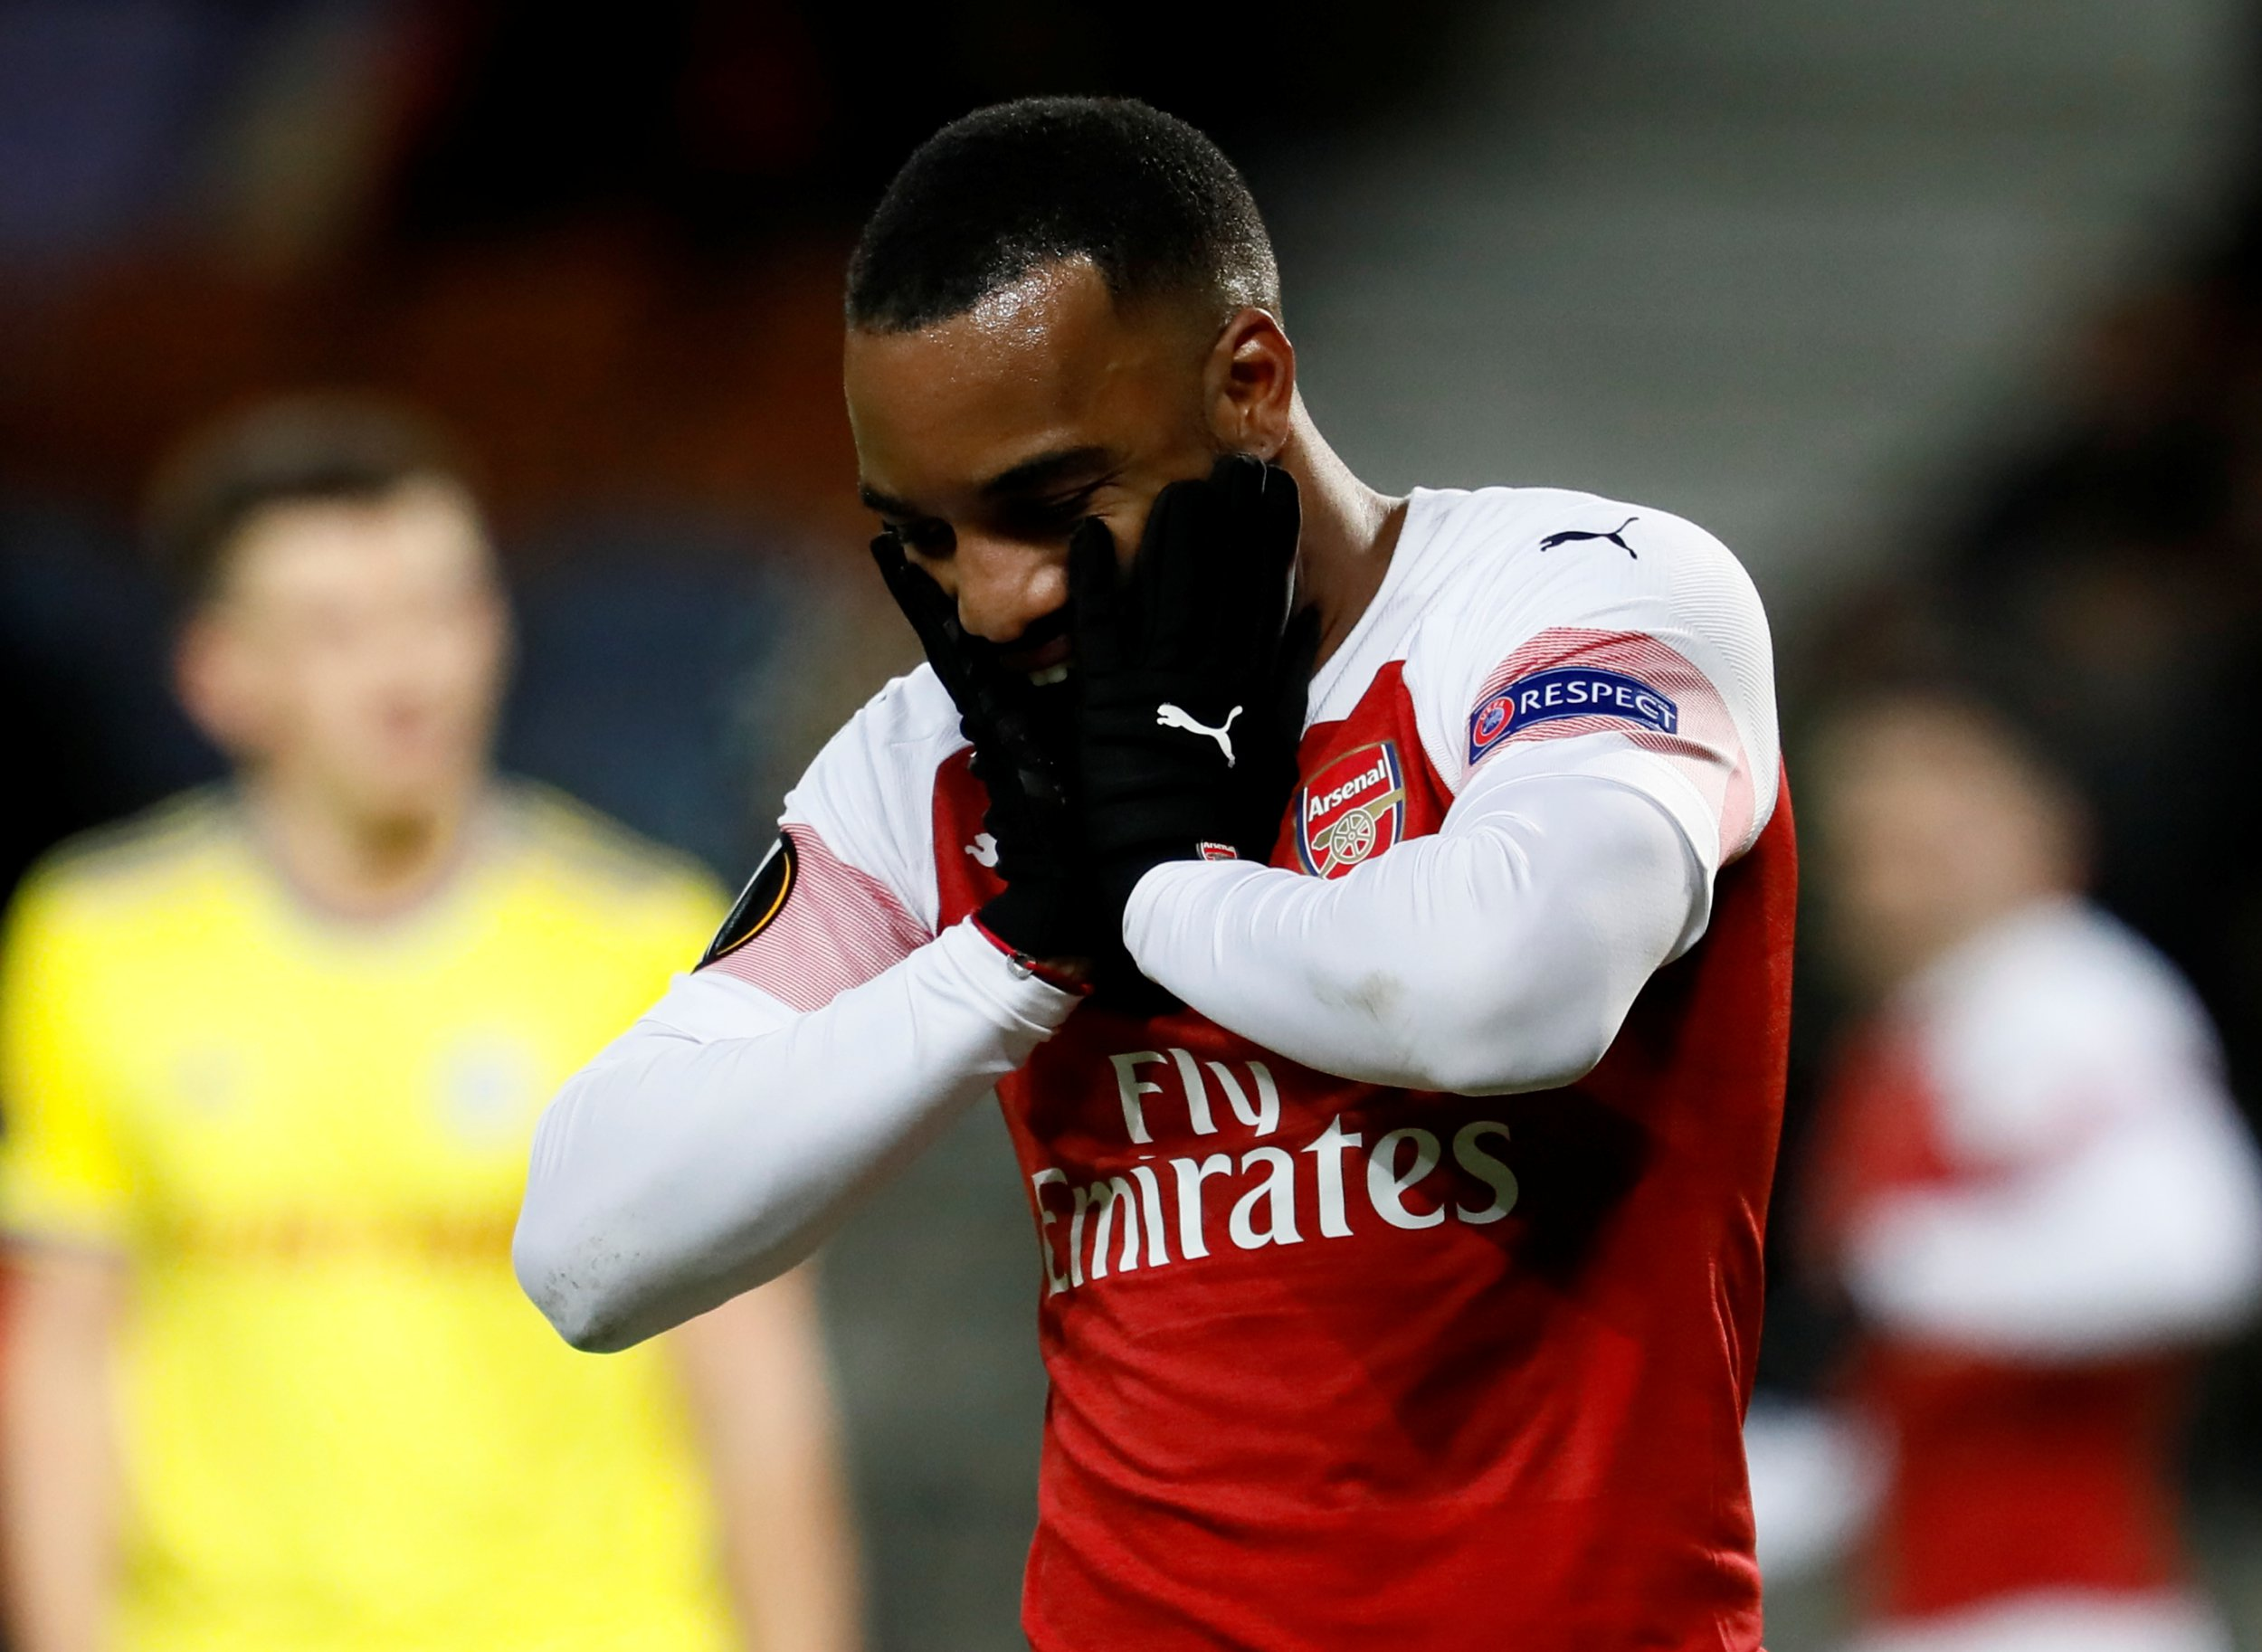 BARYSAW, BELARUS - FEBRUARY 14: Alexandre Lacazette of Arsenal reacts during the UEFA Europa League Round of 32 First Leg match between BATE Barysaw and Arsenal at Barysaw-Arena on February 14, 2019 in Barysaw, Belarus. (Photo by MB Media/Getty Images)